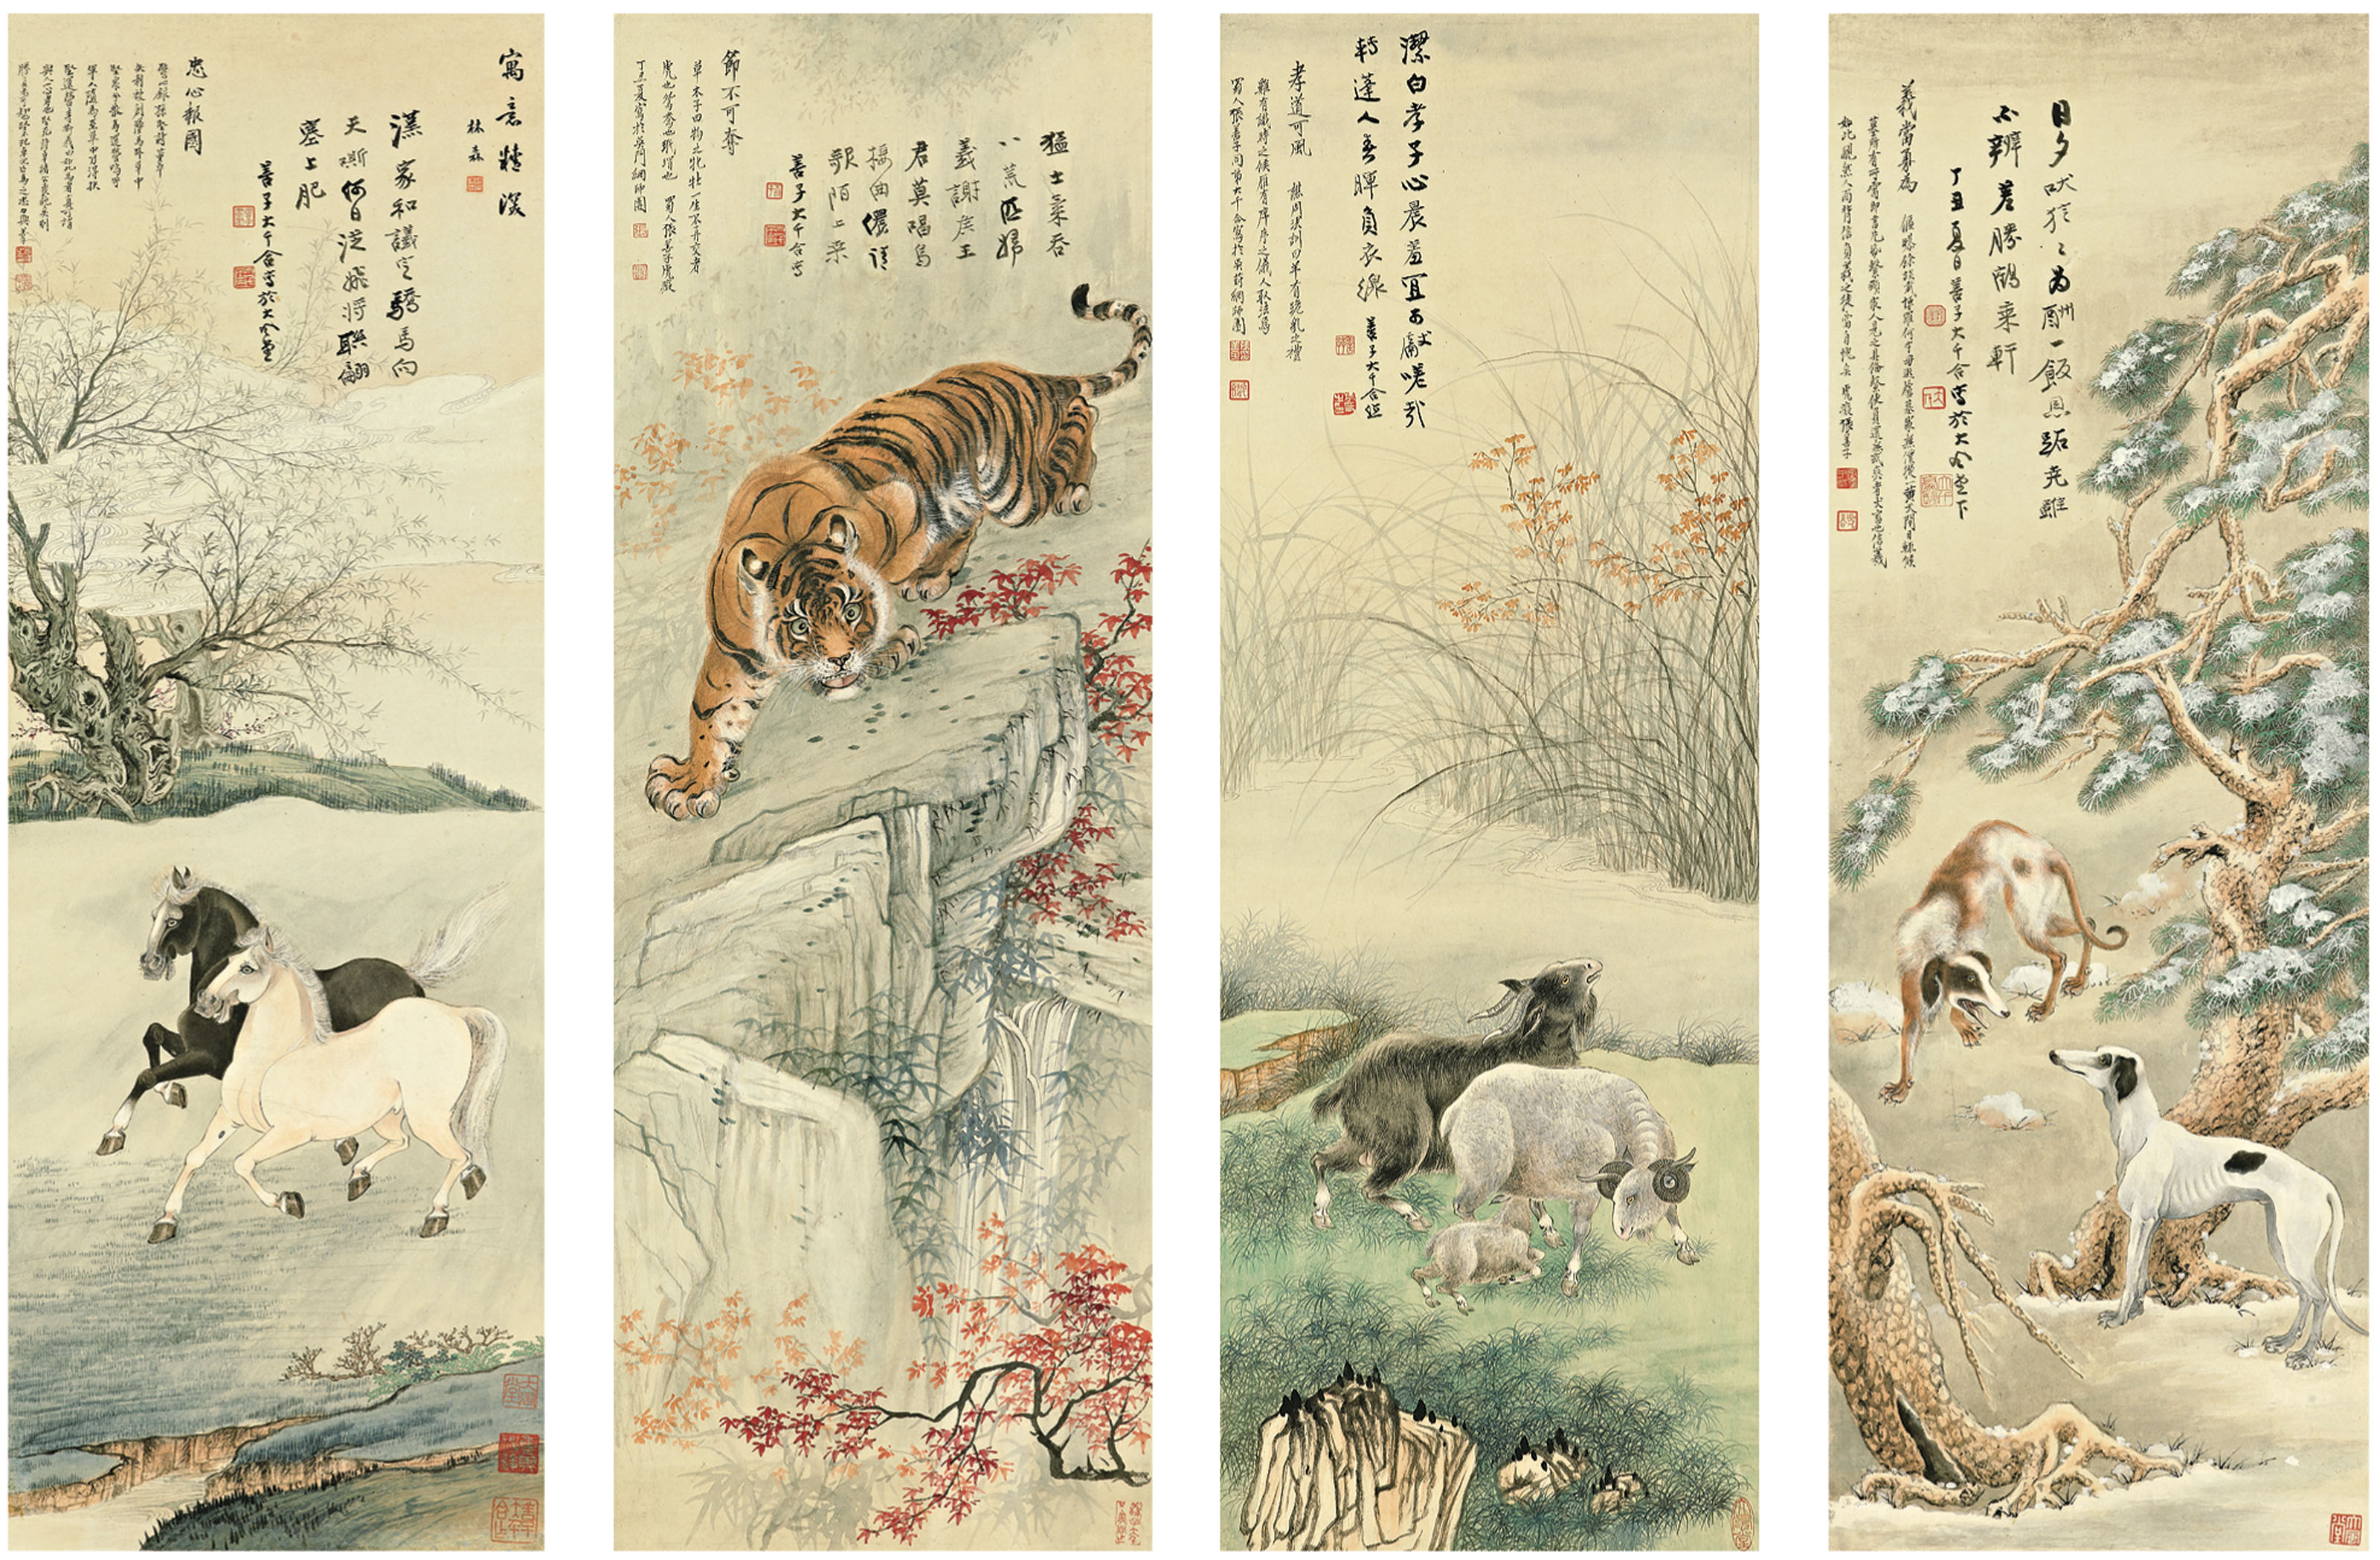 Tiger, Goats, Hounds and Horses